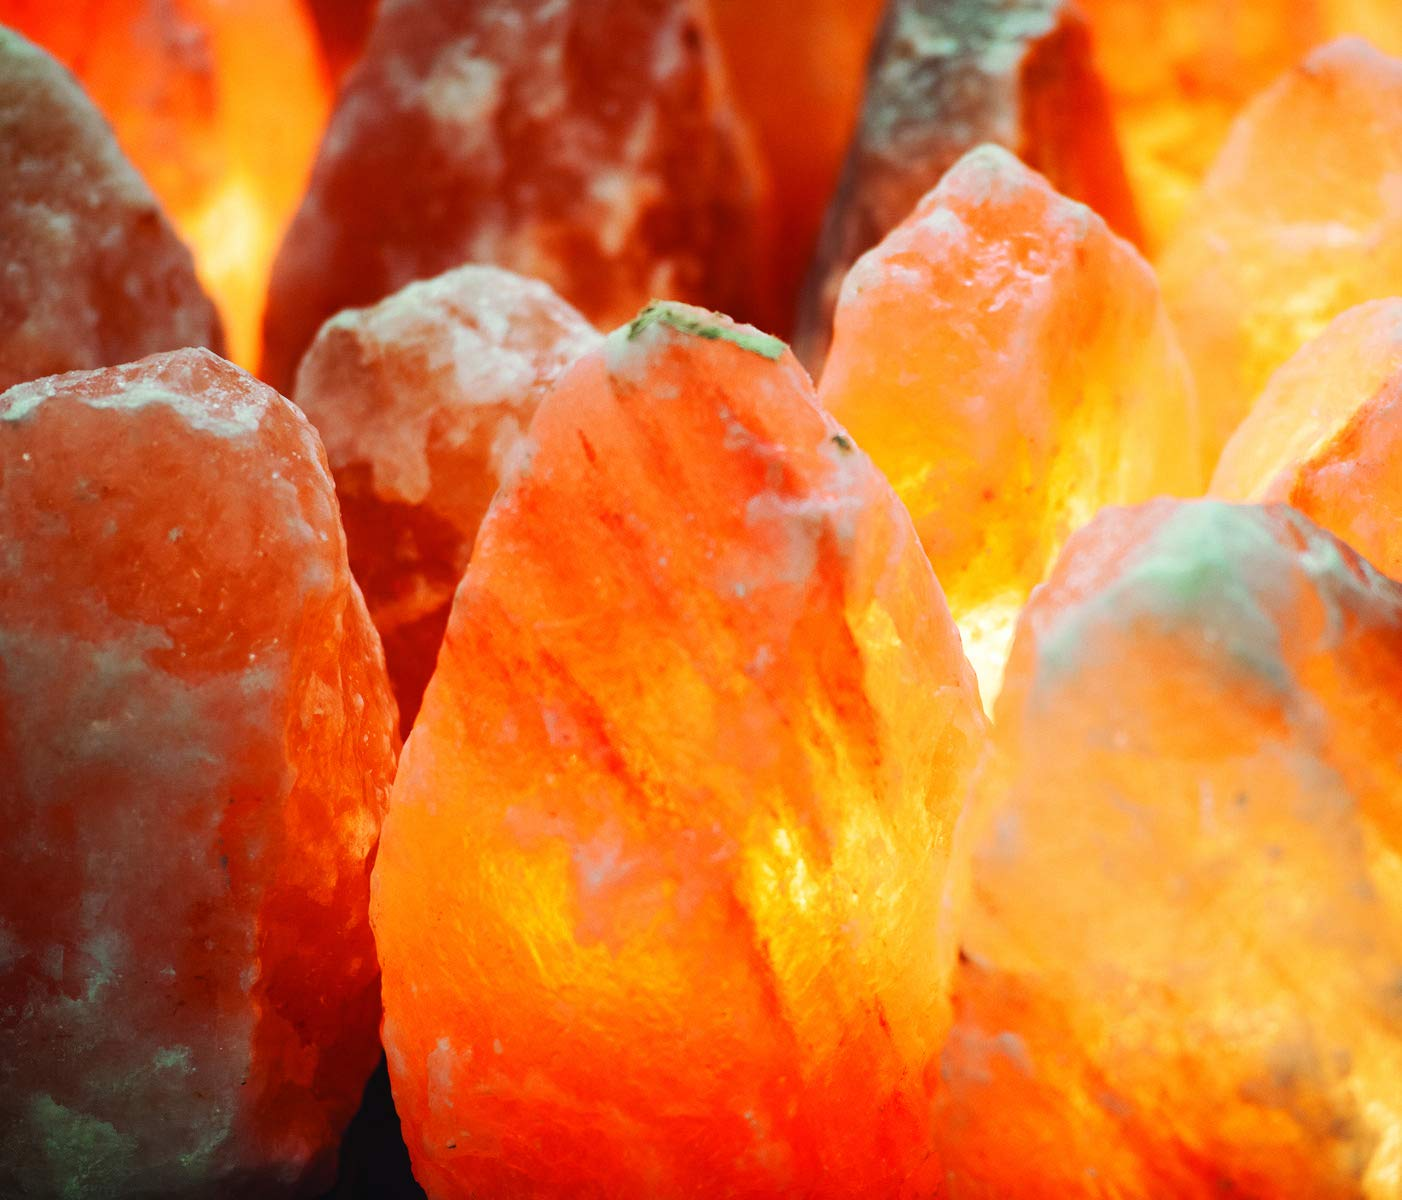 ArtNaturals Himalayan Rock Salt Lamp - Hand Carved Pink Crystal from Pure Salt in the Himalayas - for Rest, Relaxation and Energy - Real Wooden Base by ArtNaturals (Image #5)